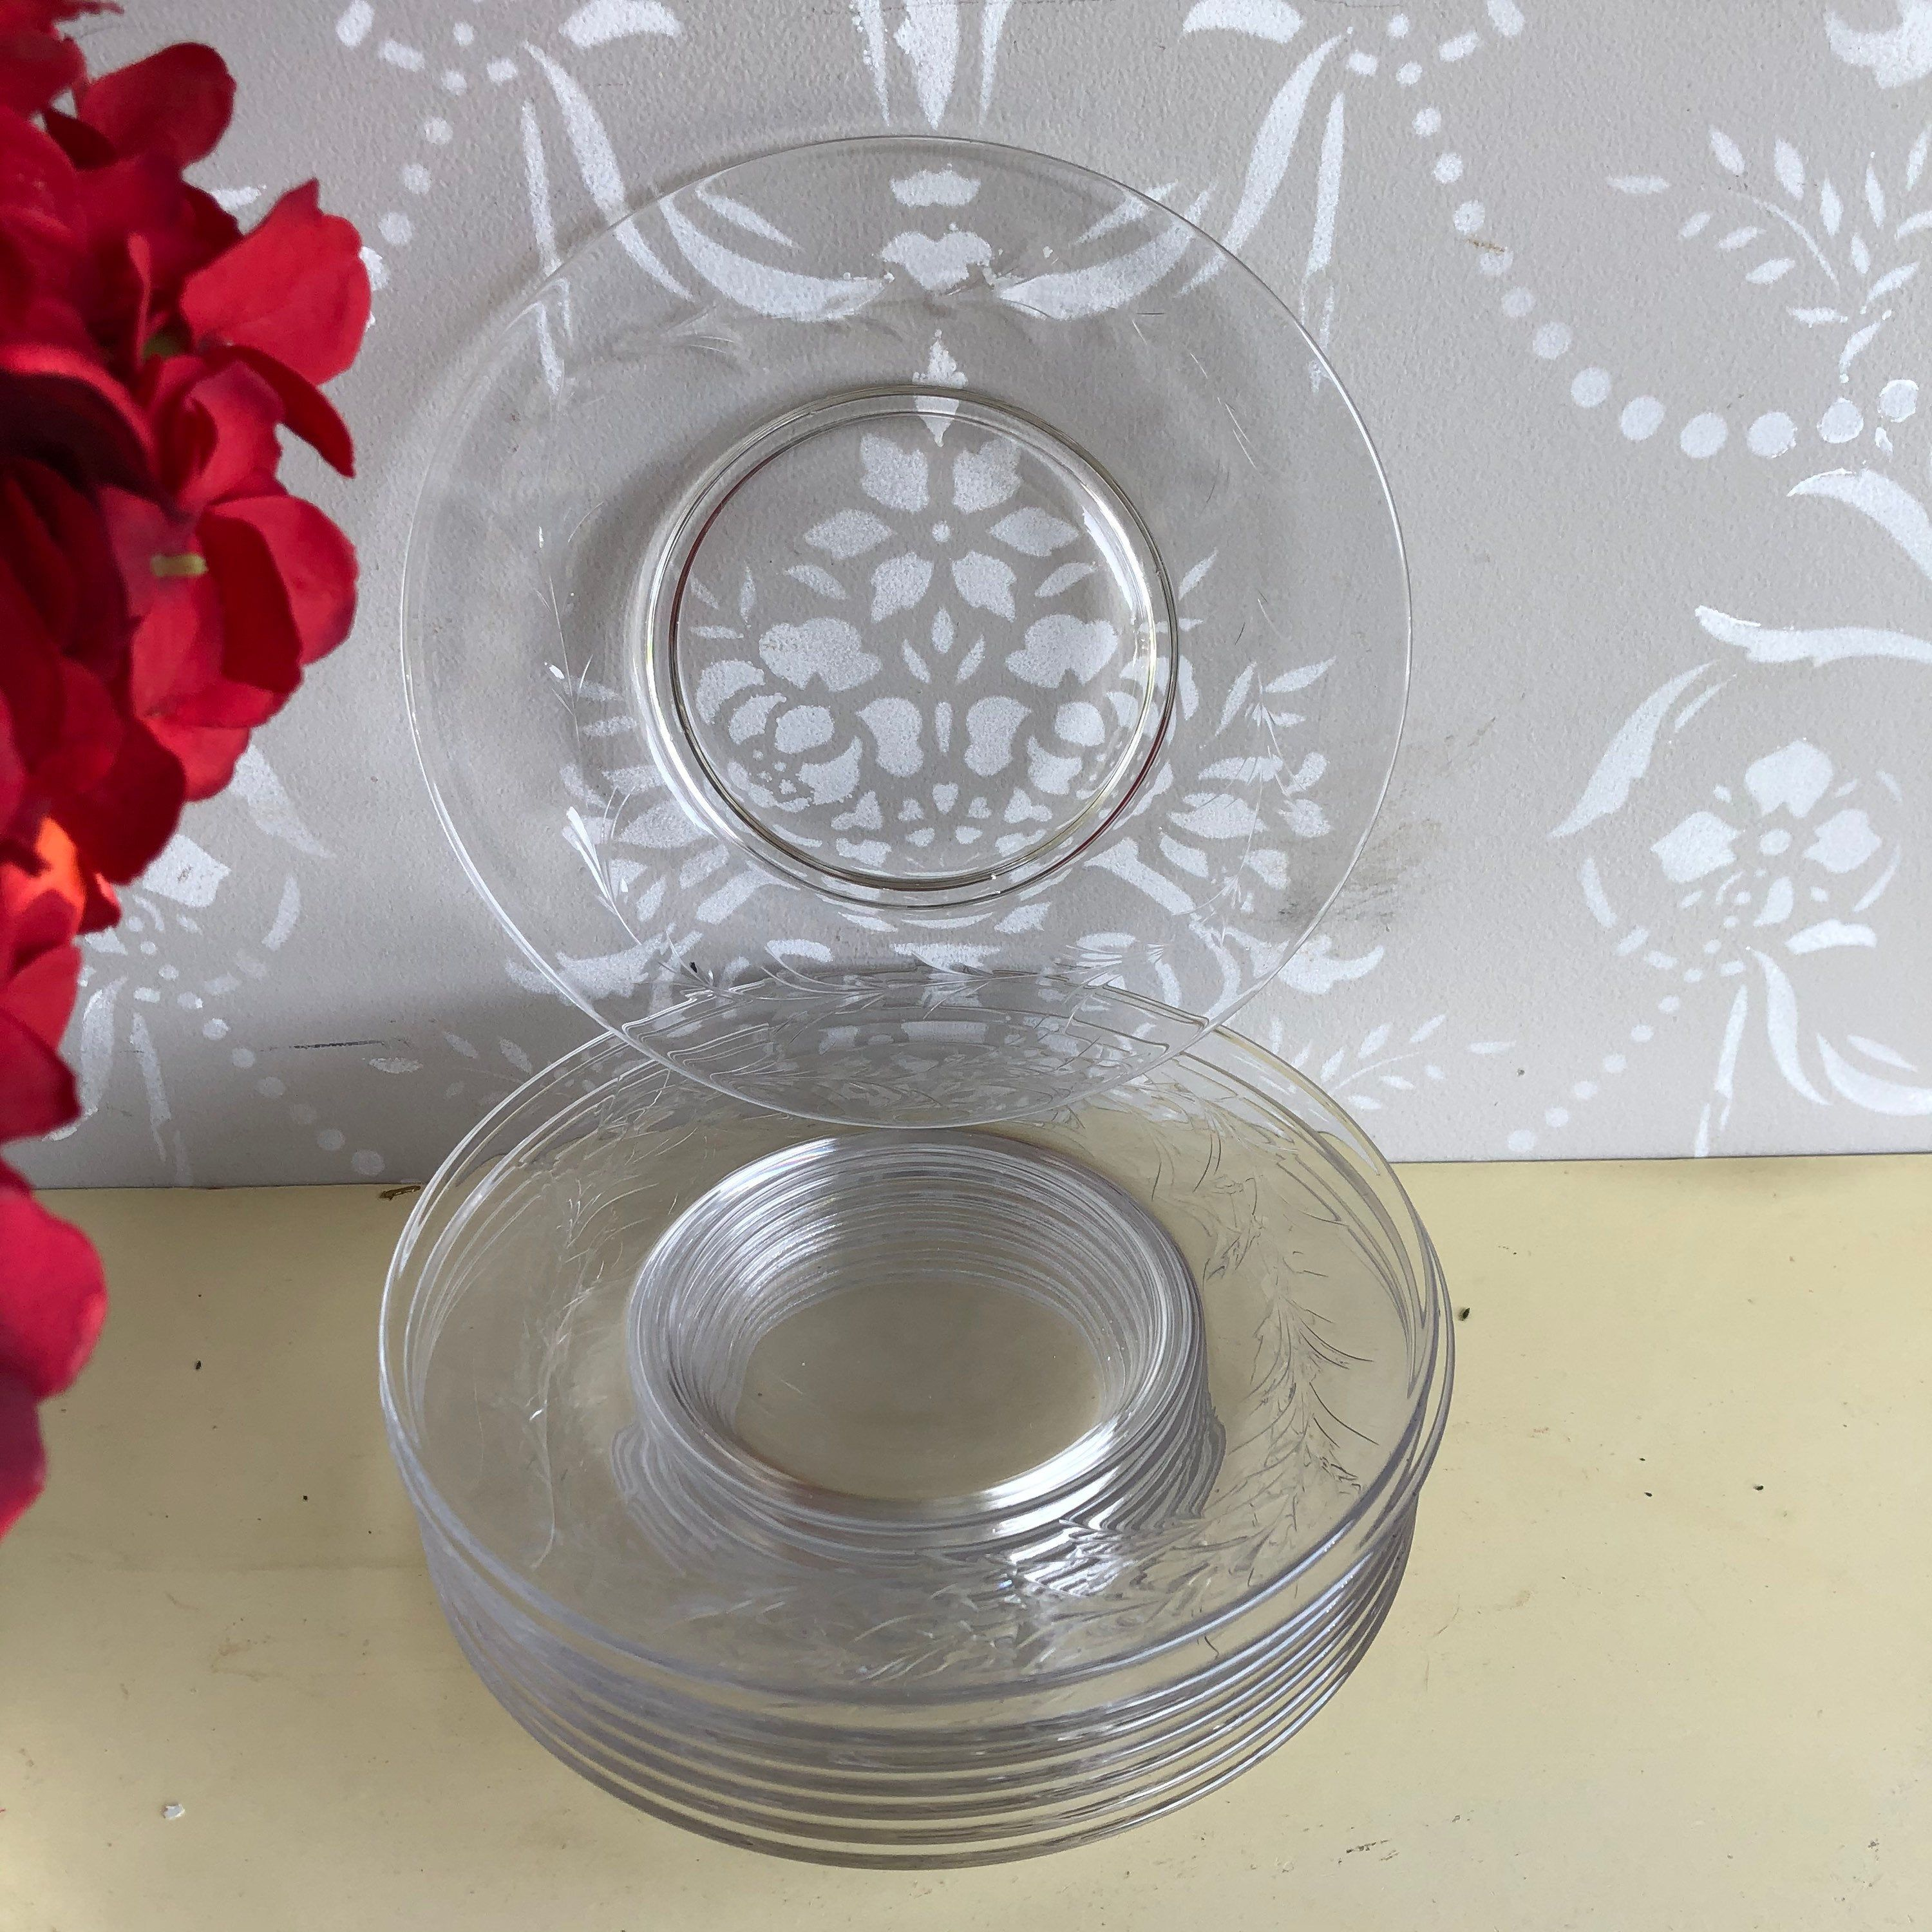 Vintage Etched Glass Clear Appetizers Dessert Plates Set Of 8 In